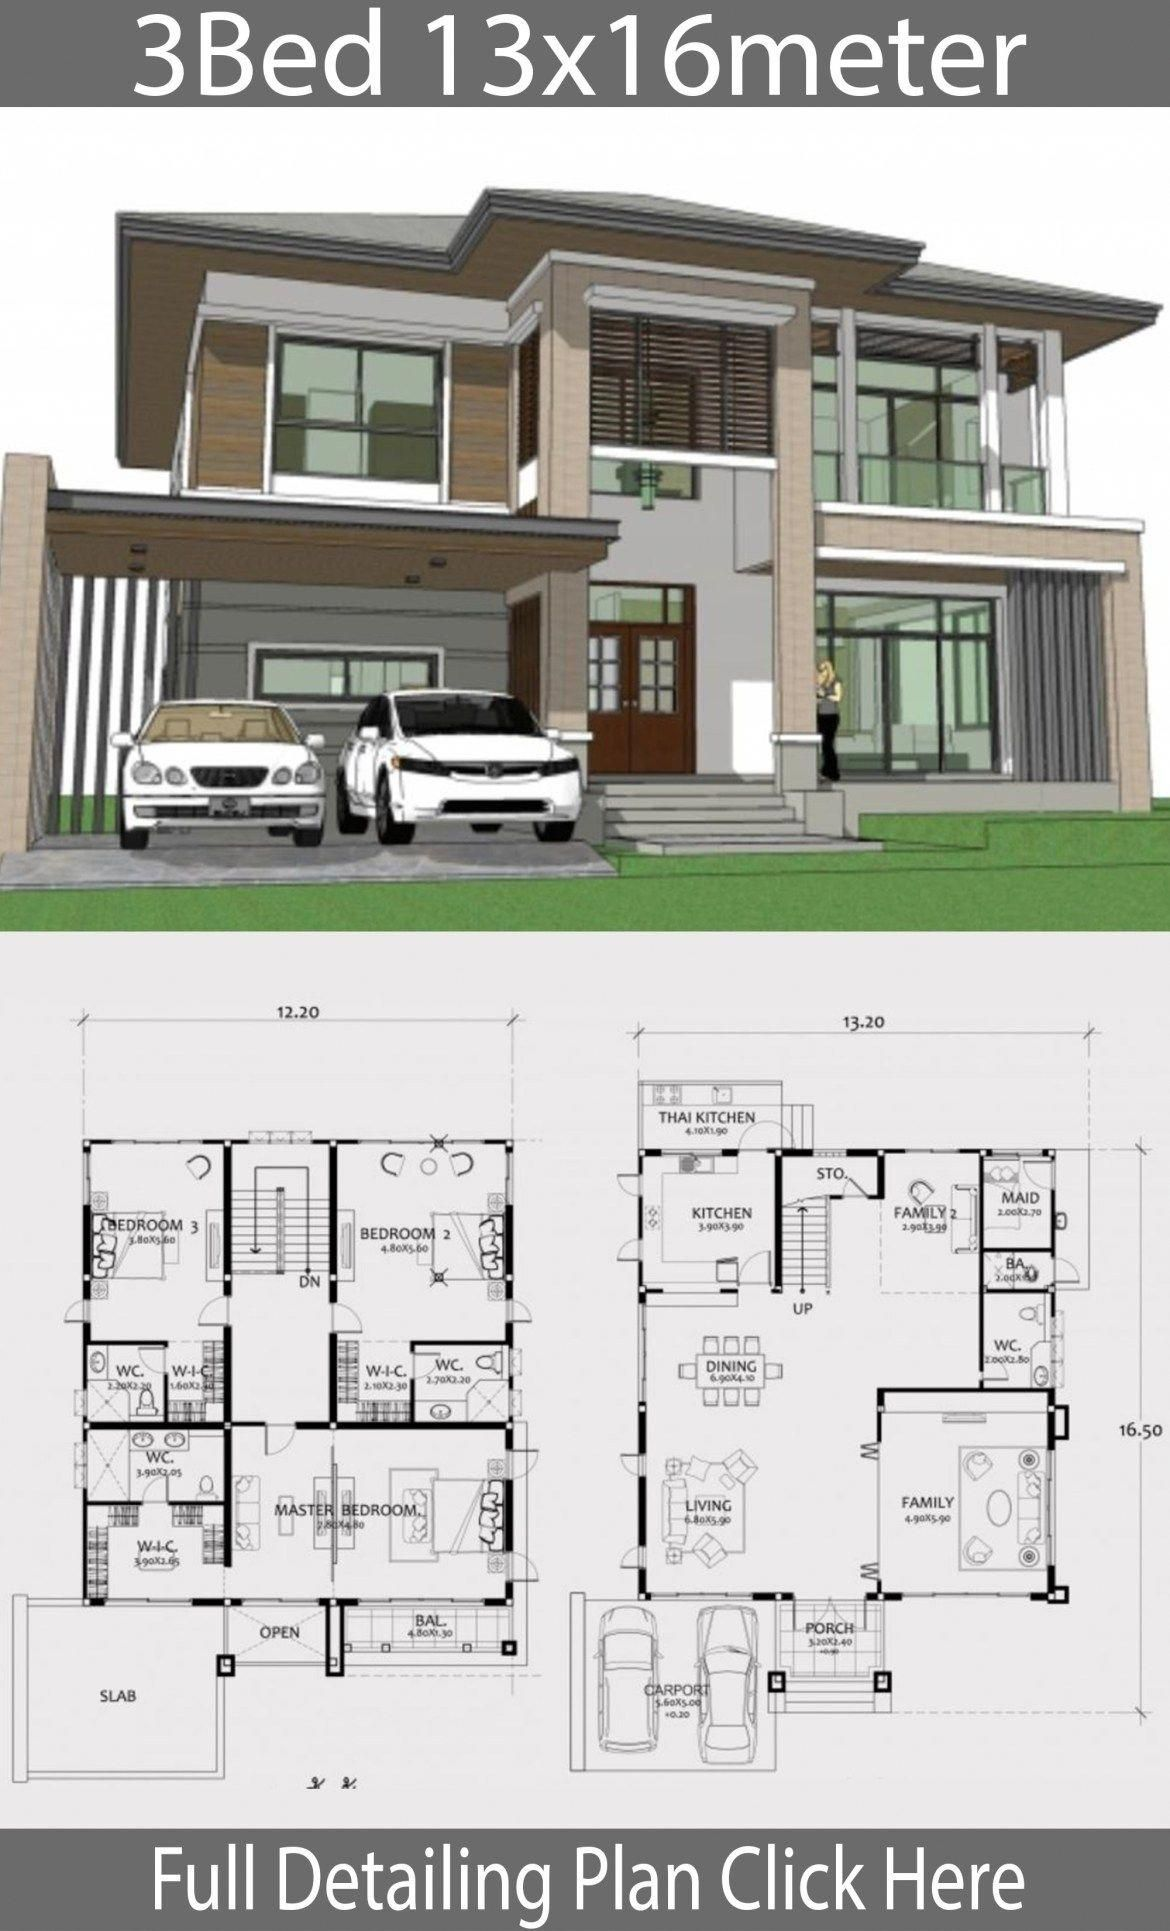 Home Design Plan 13x16m With 3 Bedrooms Home Design With Plansearch Besthomeinteriors Modern House Plans Home Design Plans Architectural House Plans